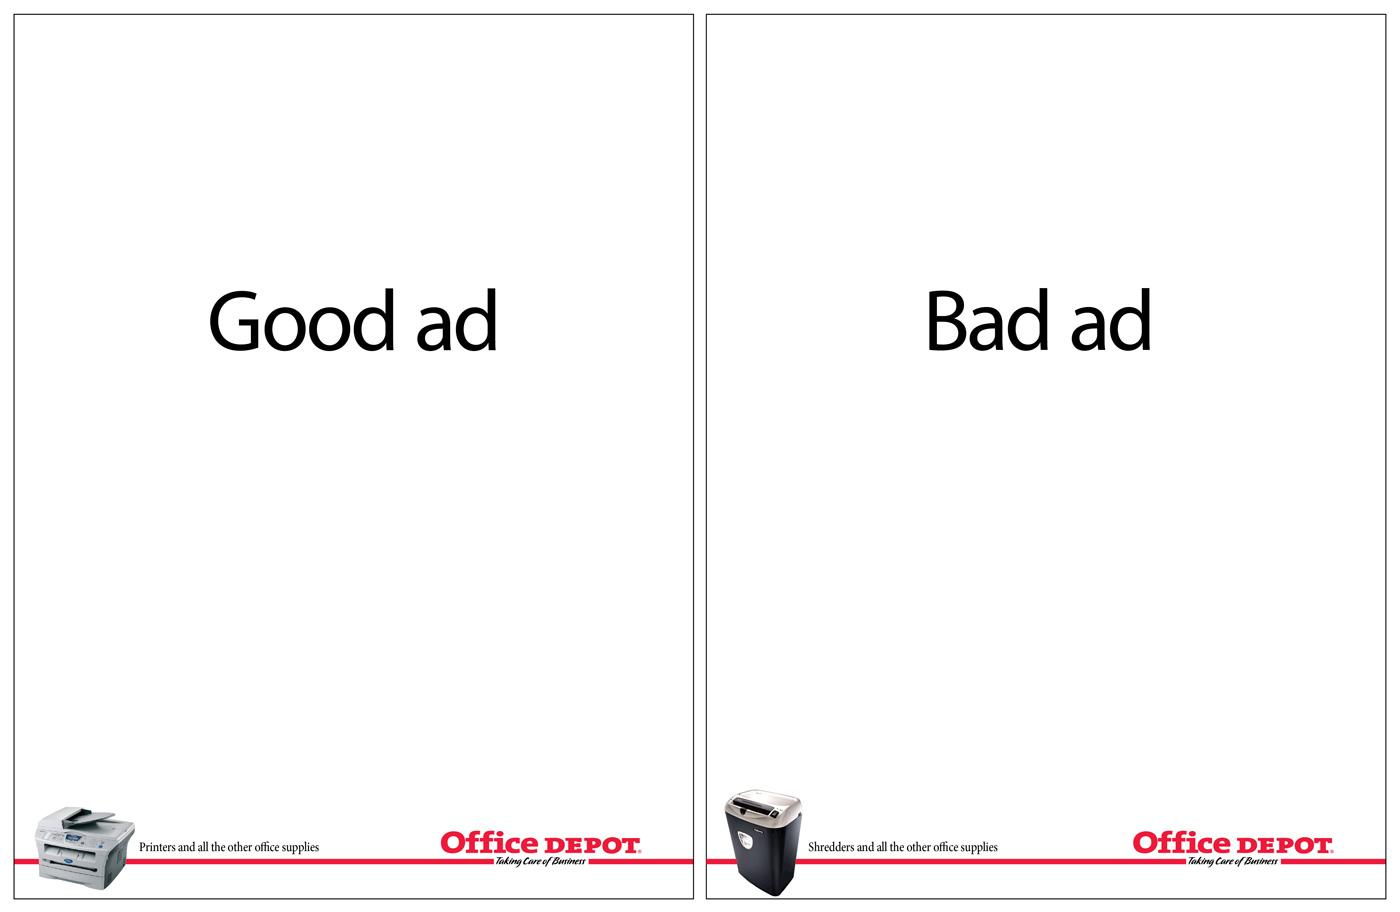 Office Depot Print Ad -  Good ad, Bad ad